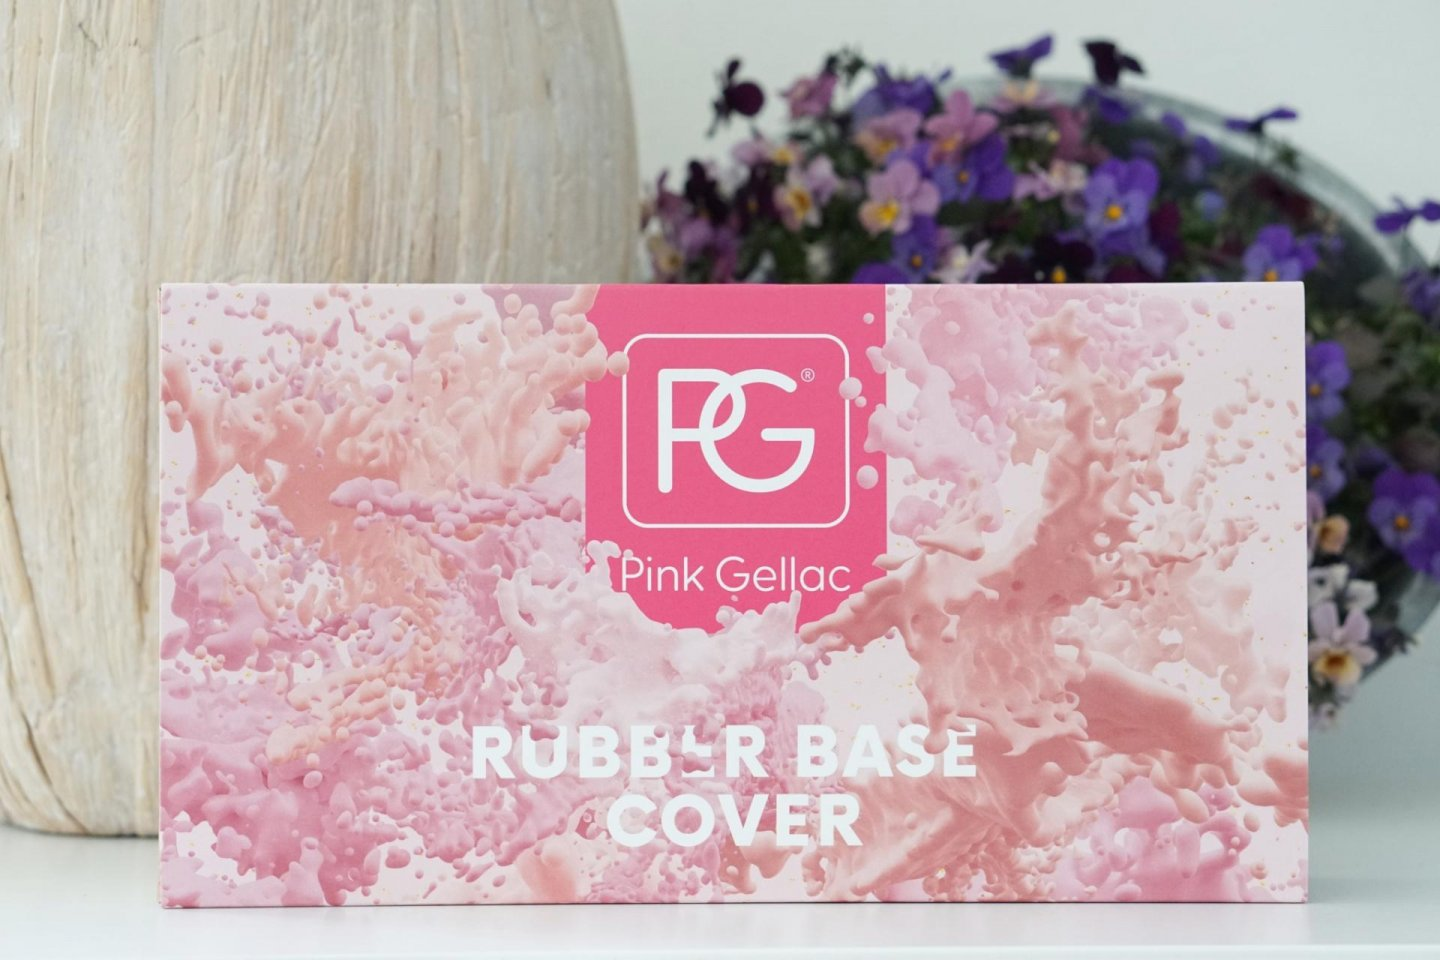 review Pink Gellac Rubber Base Cover